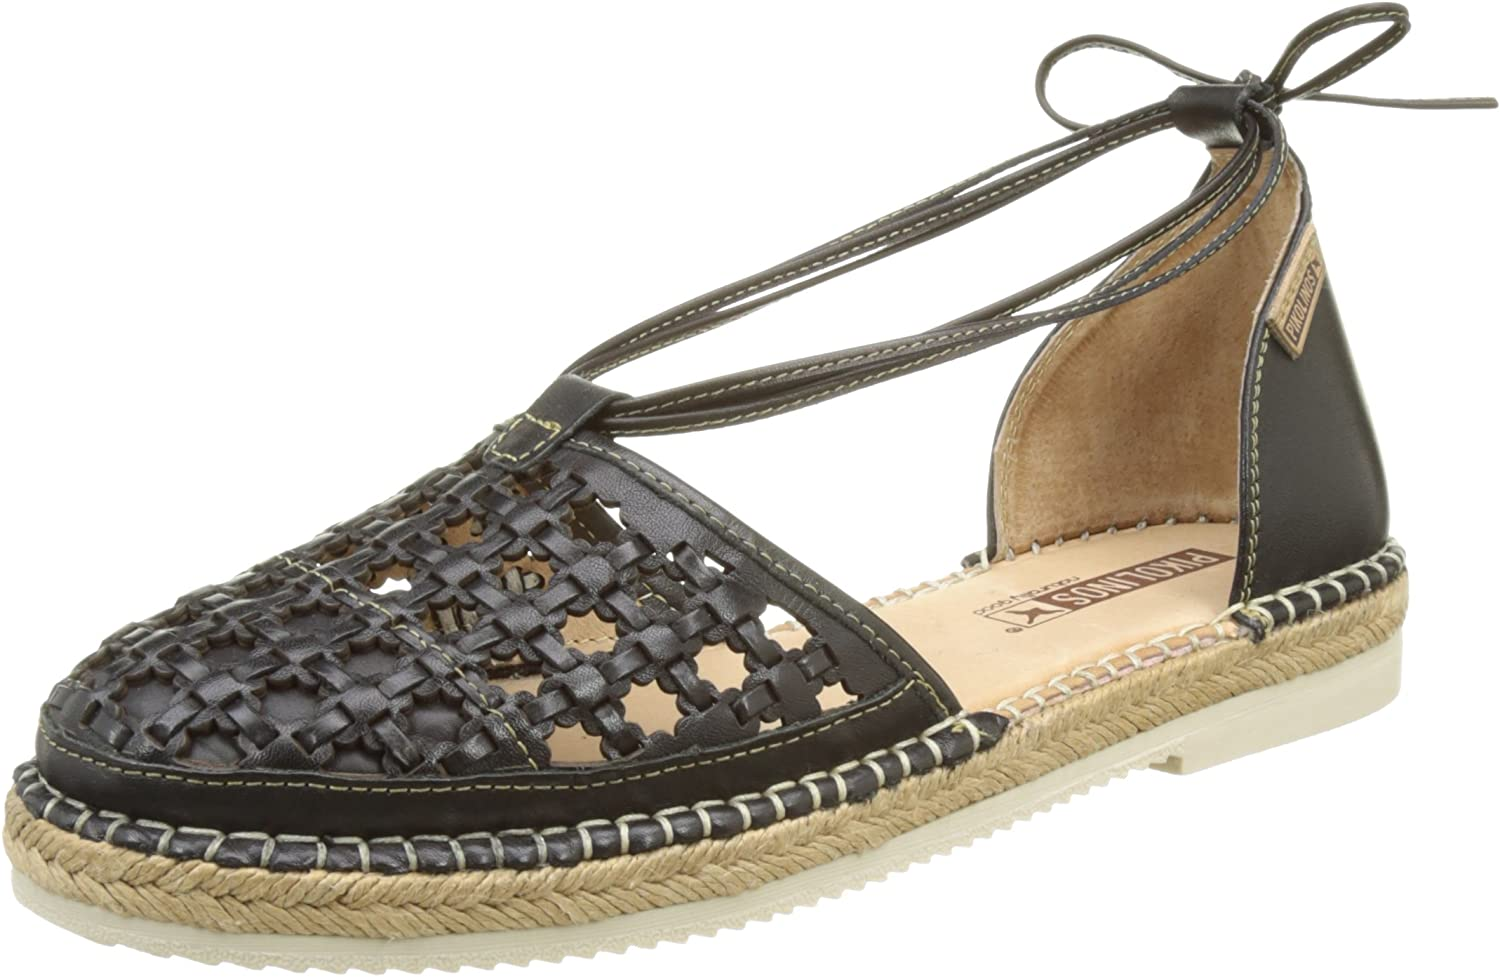 Pikolinos Womens W3K-3631 Closed Toe Casual Ankle Strap Sandals